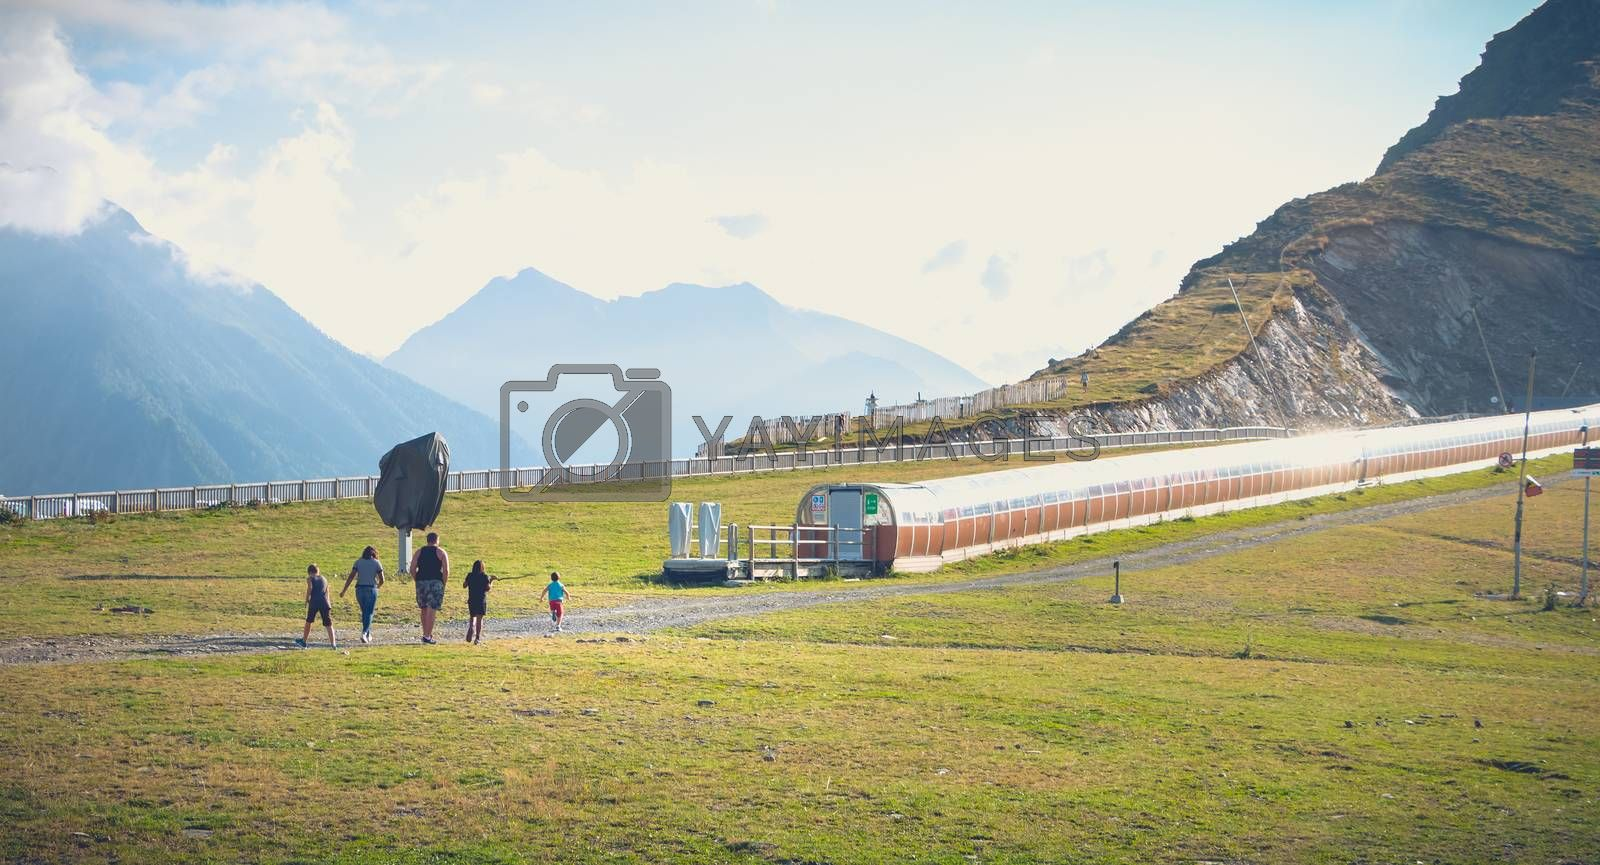 Saint Lary Soulan, France - August 20, 2018: family who walks on the ski slopes of a resort without snow in summer